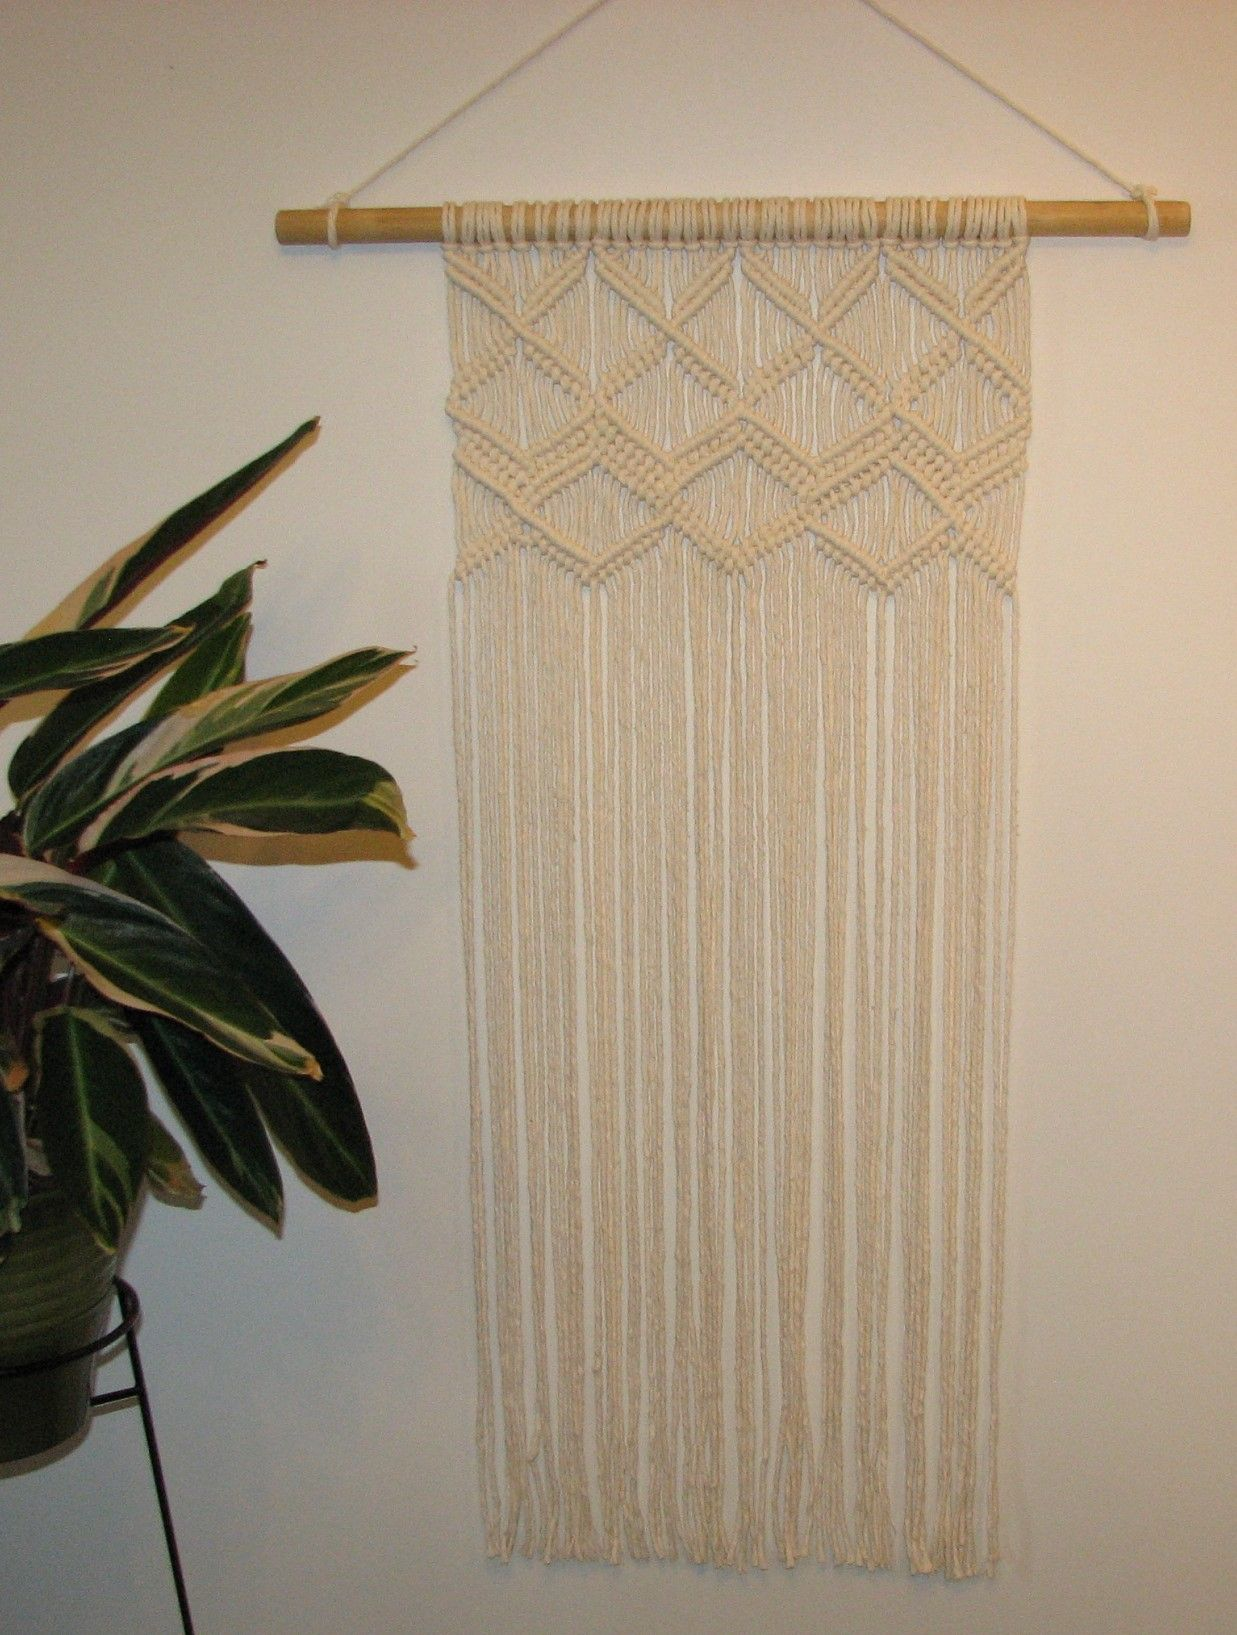 Macrame wallhanging (With images) Wall hanging, Decor